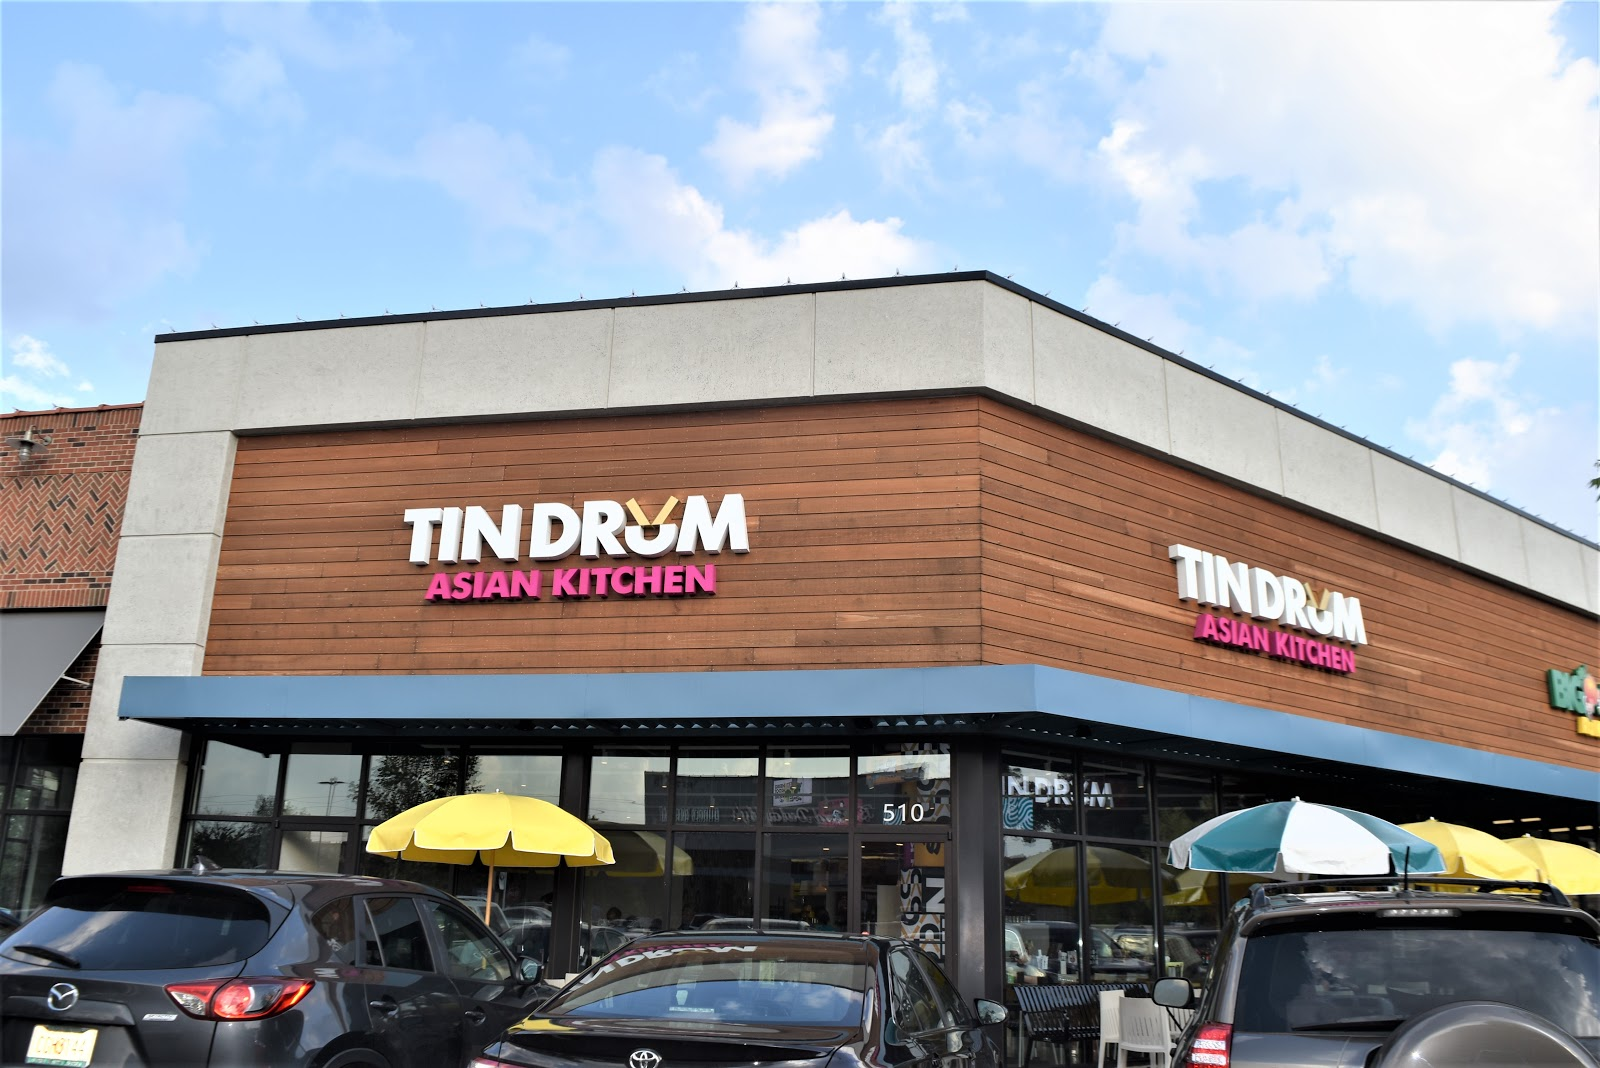 Trying Out the Limited Time Tin Drum Asian Kitchen's URBAN GARDEN Menu Items